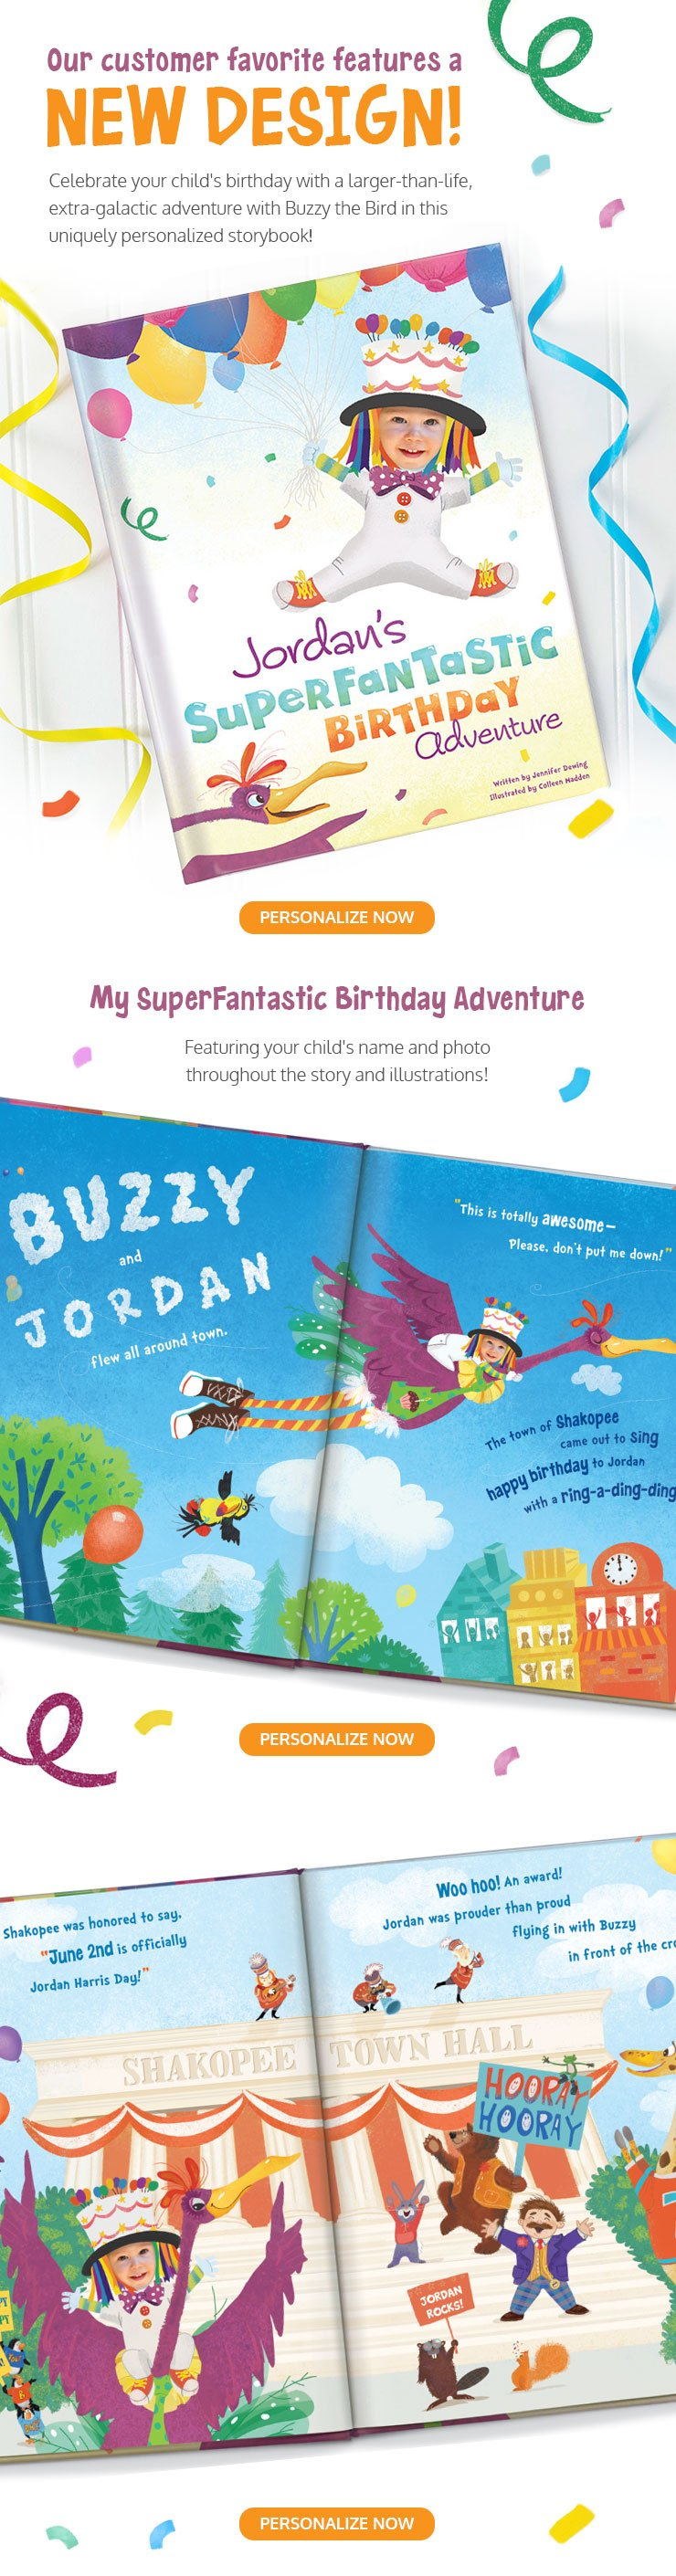 It's My Birthday! Personalized Storybook